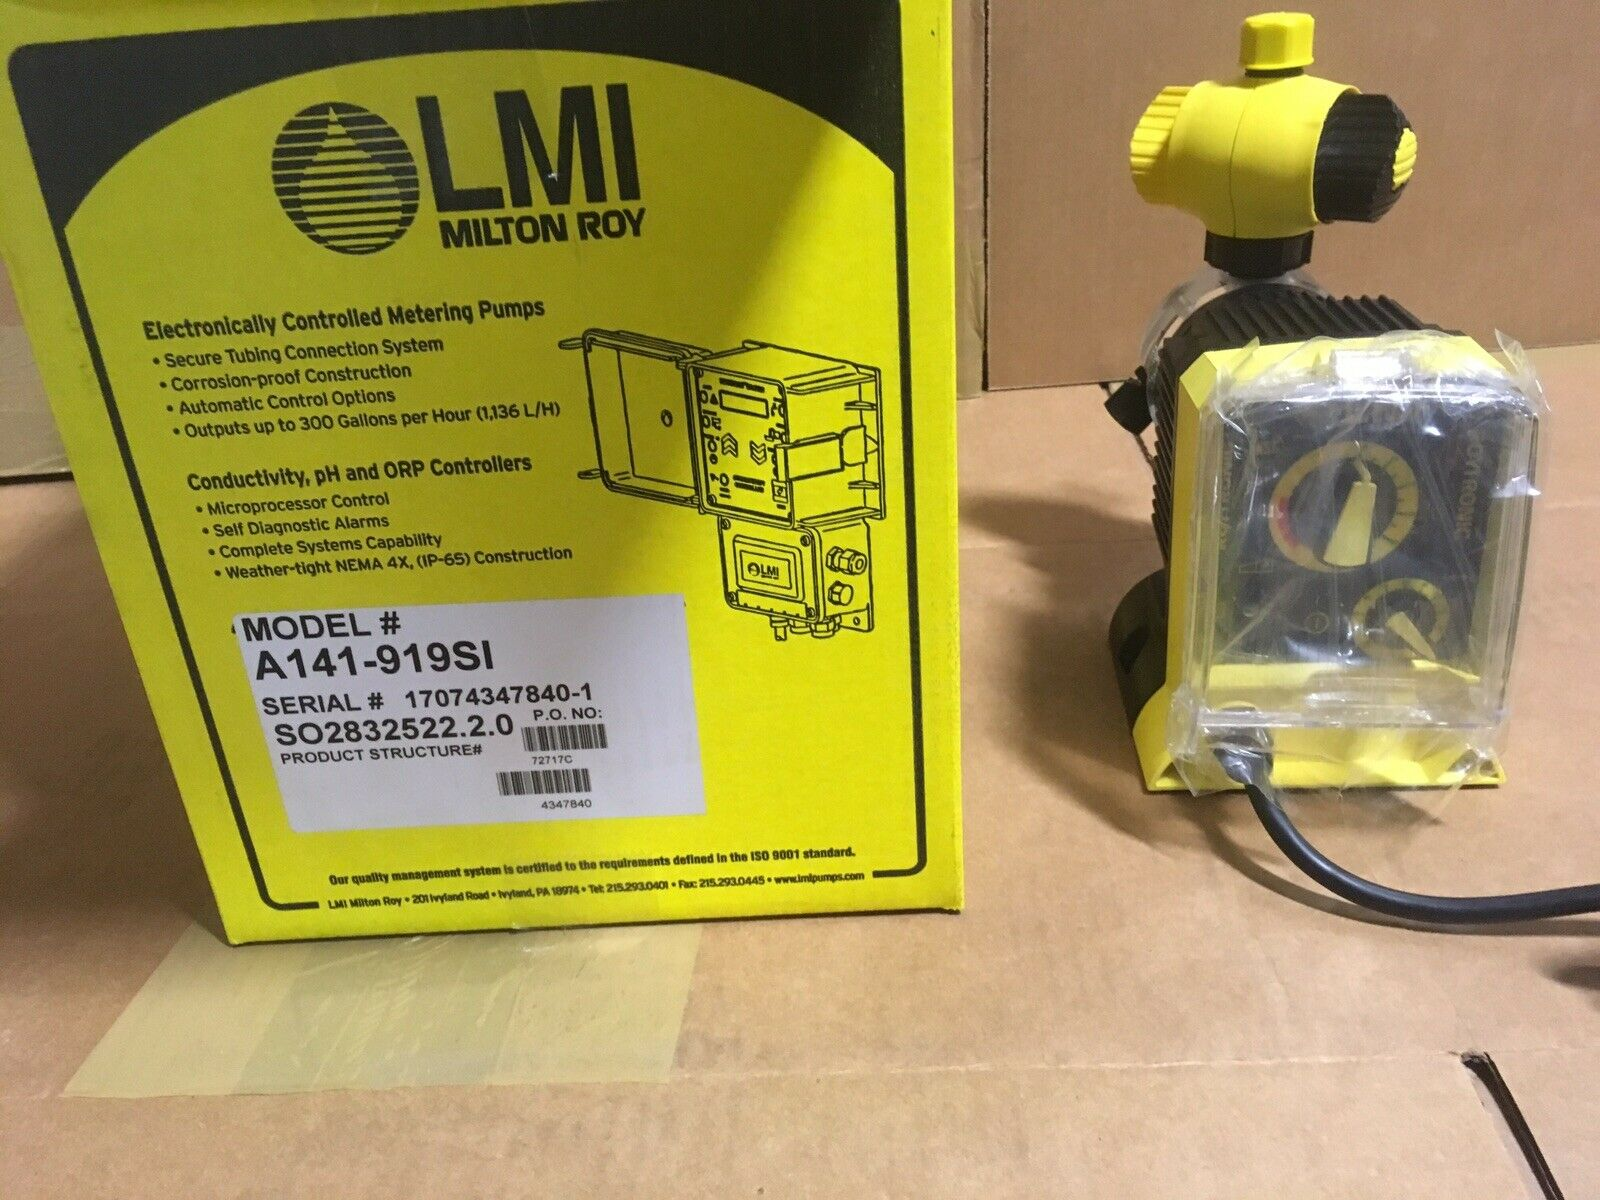 Magnificent Lmi Chemical Metering Pump A141 919Si 5 Gph 250 Psi Acrylic Pvdf Wiring Digital Resources Bioskbiperorg